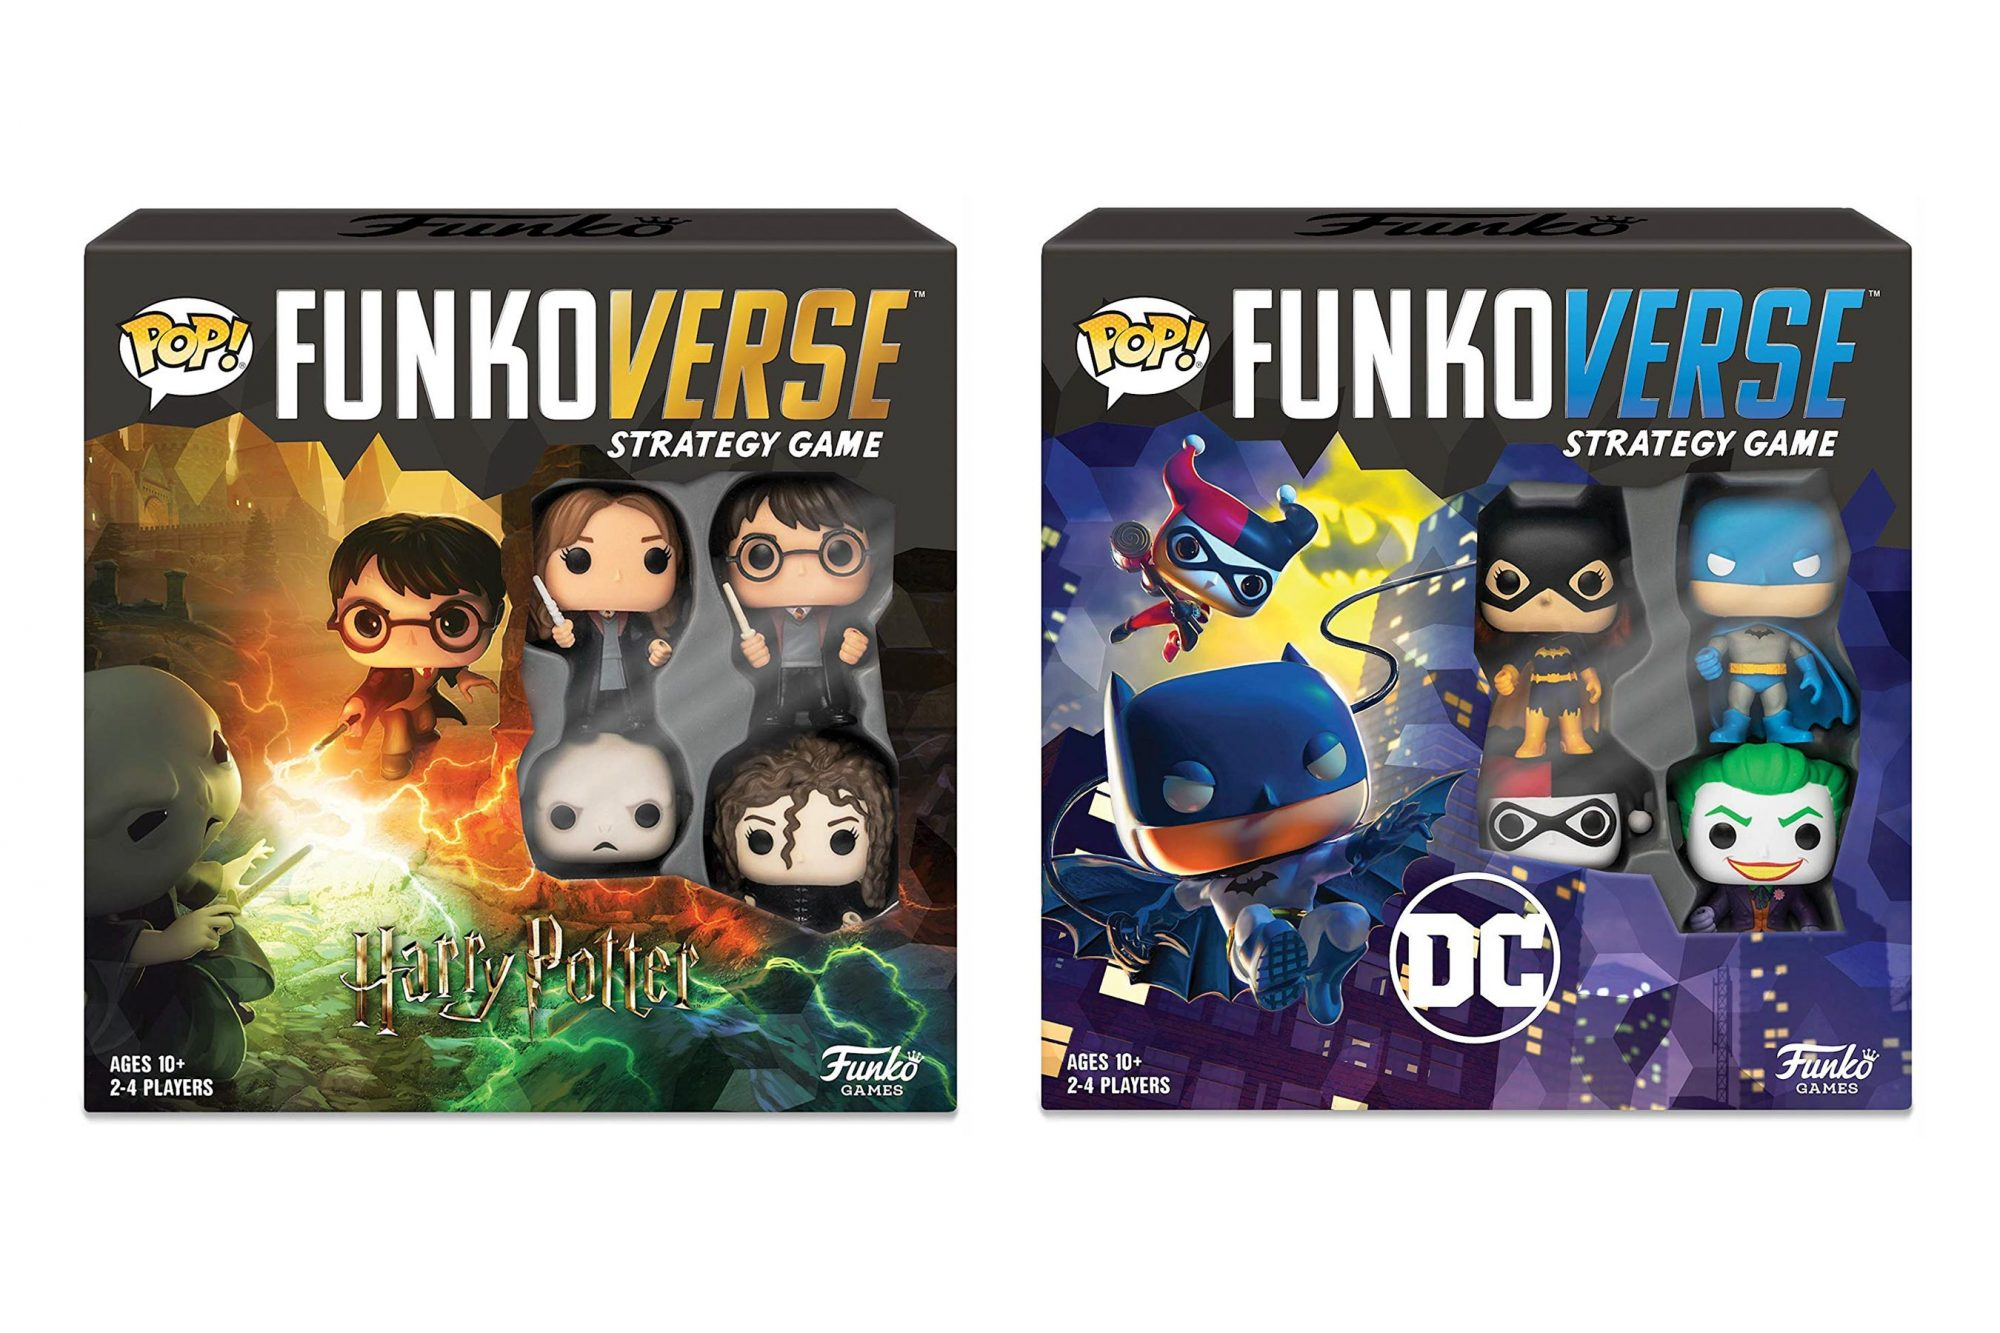 Funko Pop! - Funkoverse Strategy Game: Harry Potter #100 - Base Set Funko Pop! - Funkoverse Strategy Game: DC #100 - Base Set